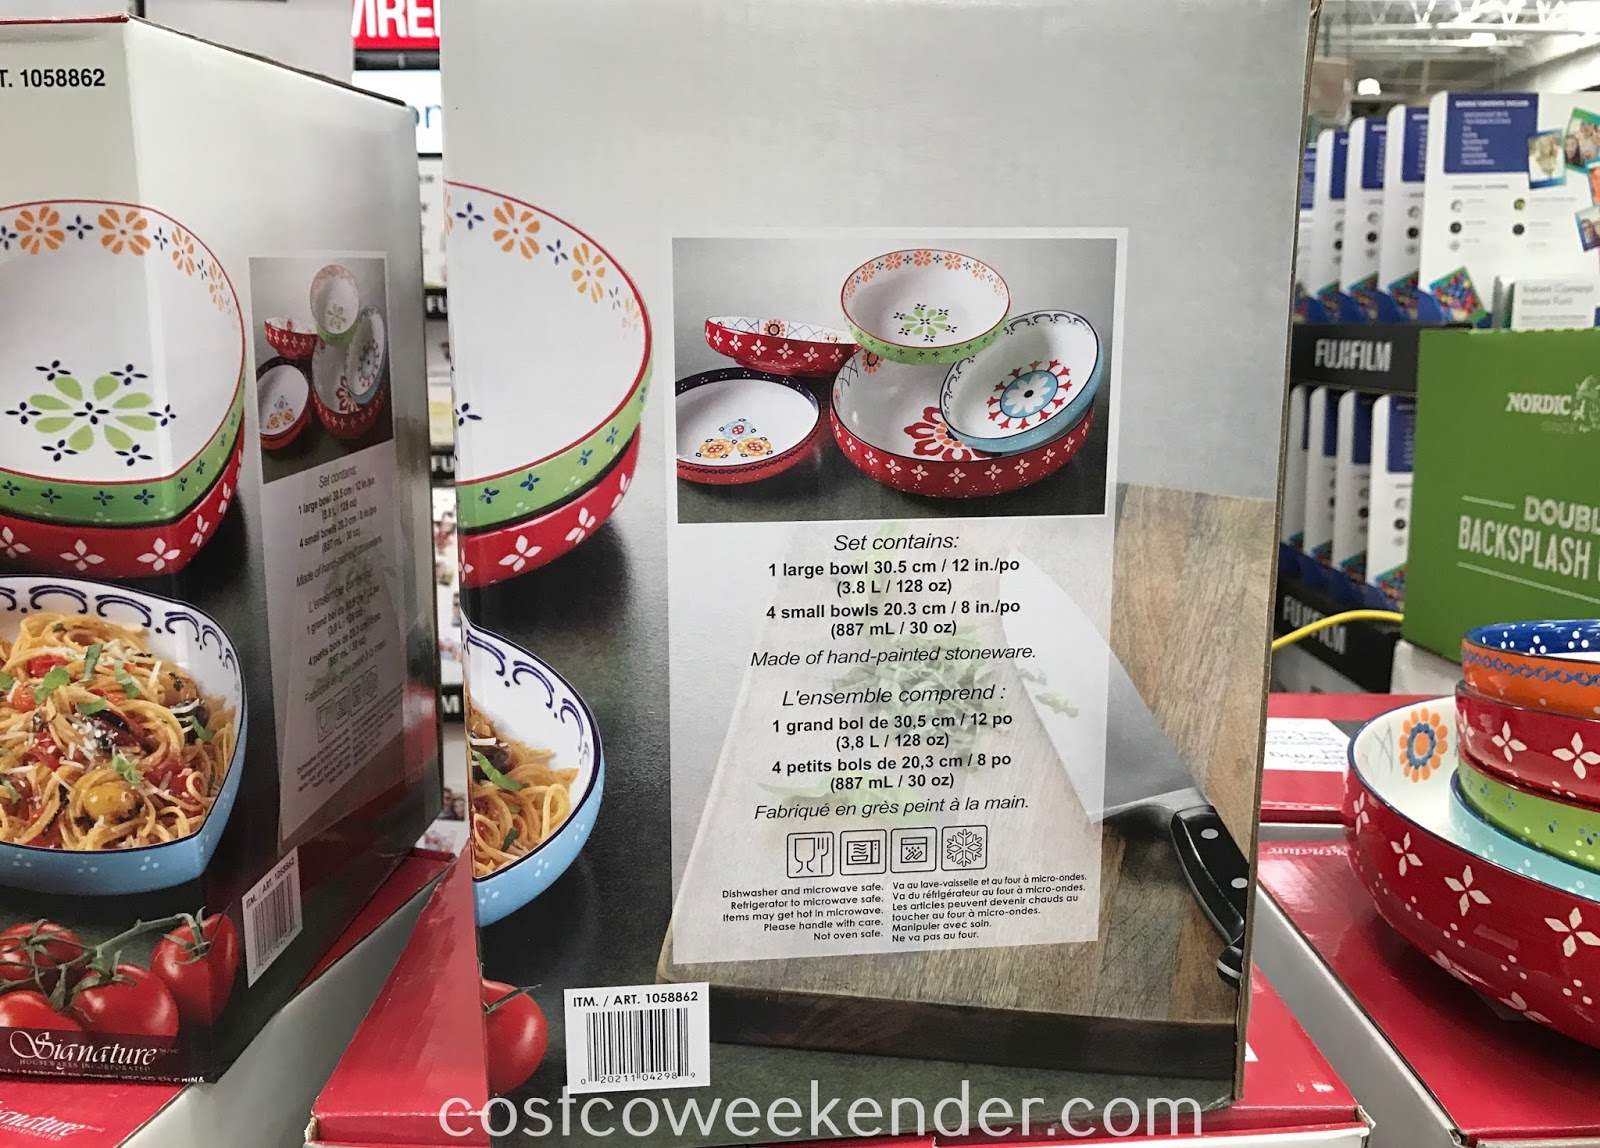 Costco 1058862 - Signature Housewares 5-piece Serving Bowl Set: great for family dinners